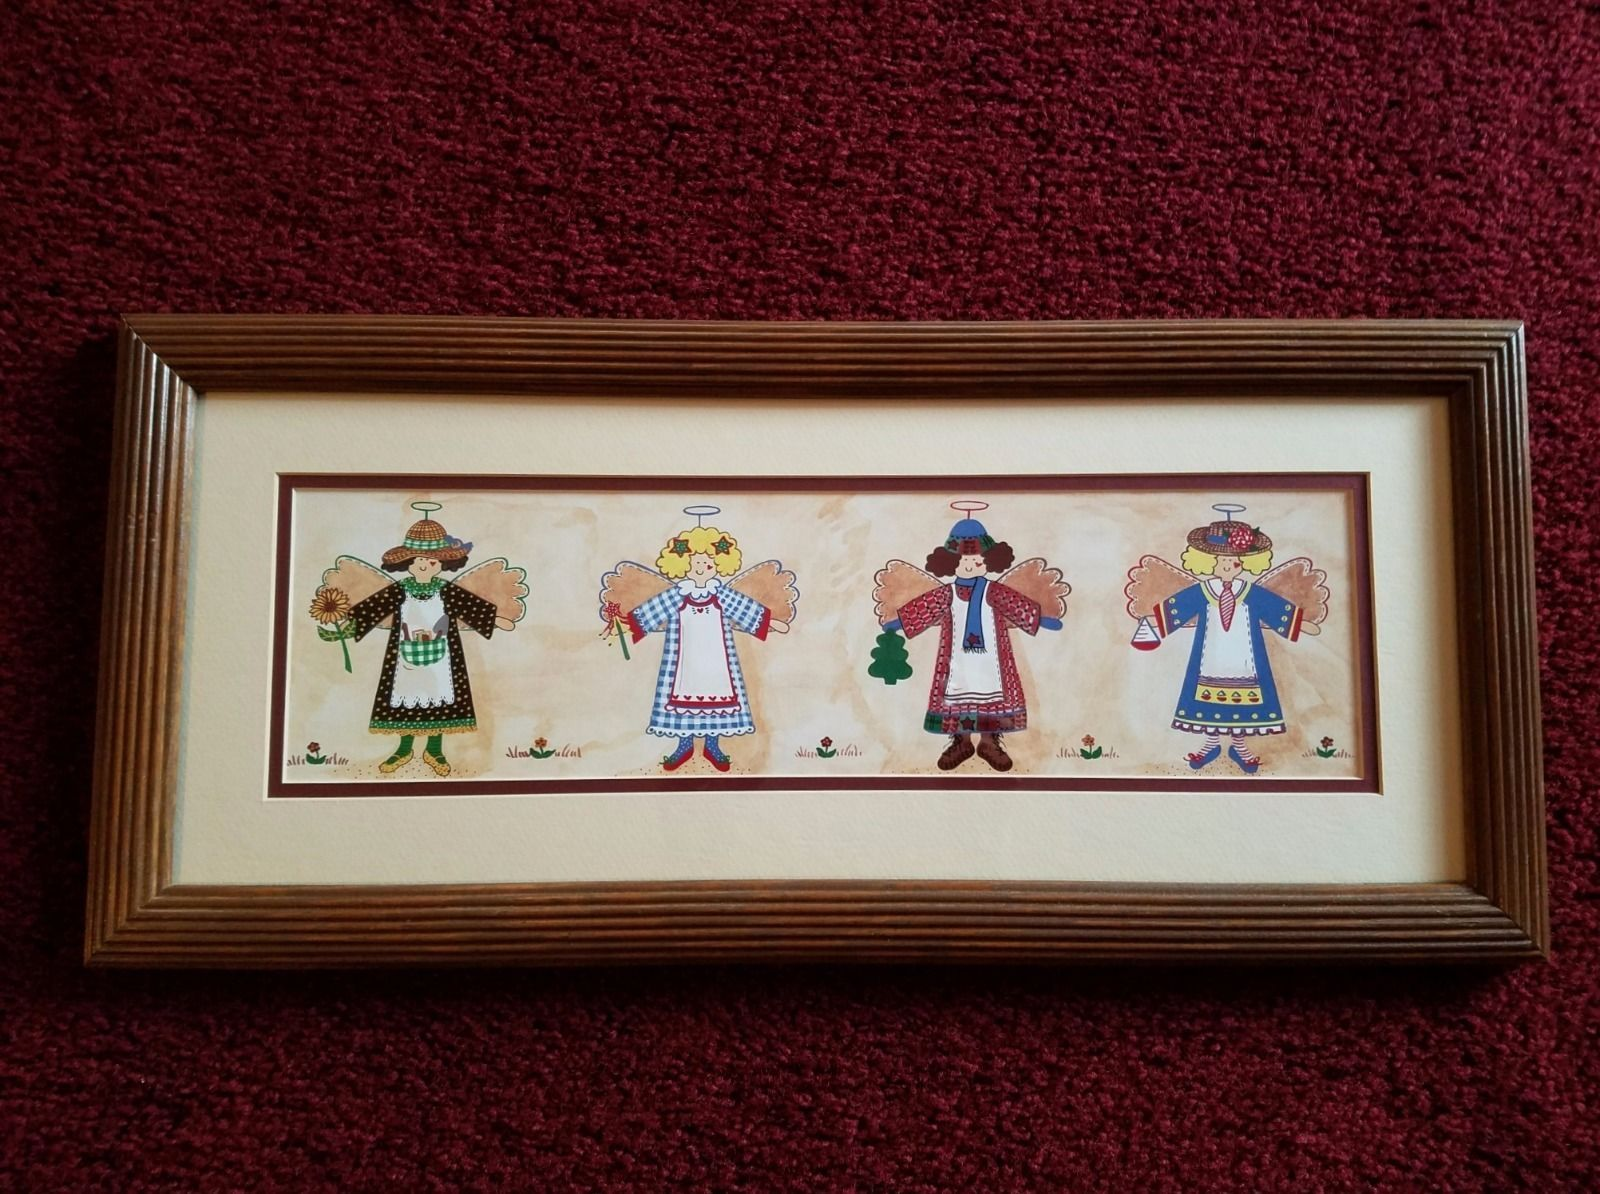 Home Interior Four Angels Picture Good Used Condition